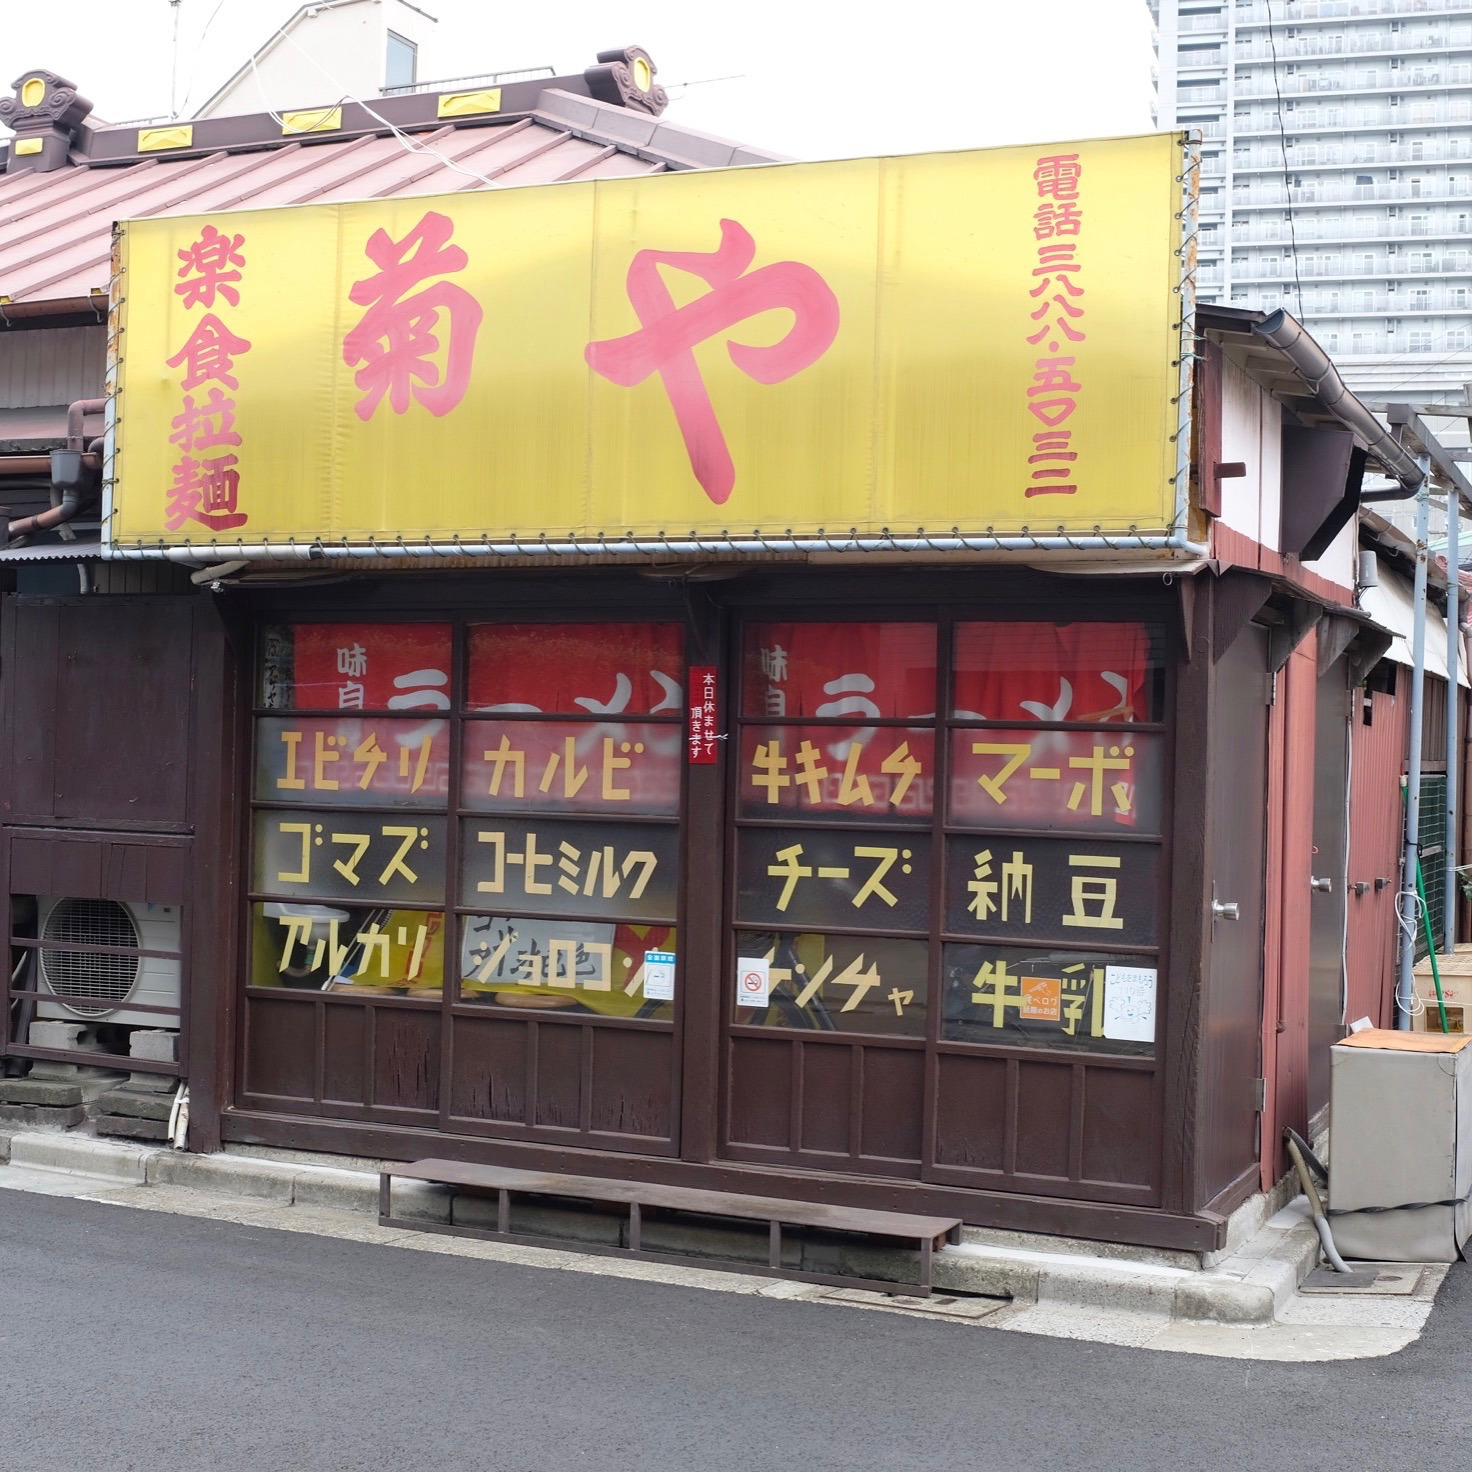 Kikuya Shop Photo Abram - cropped.JPG